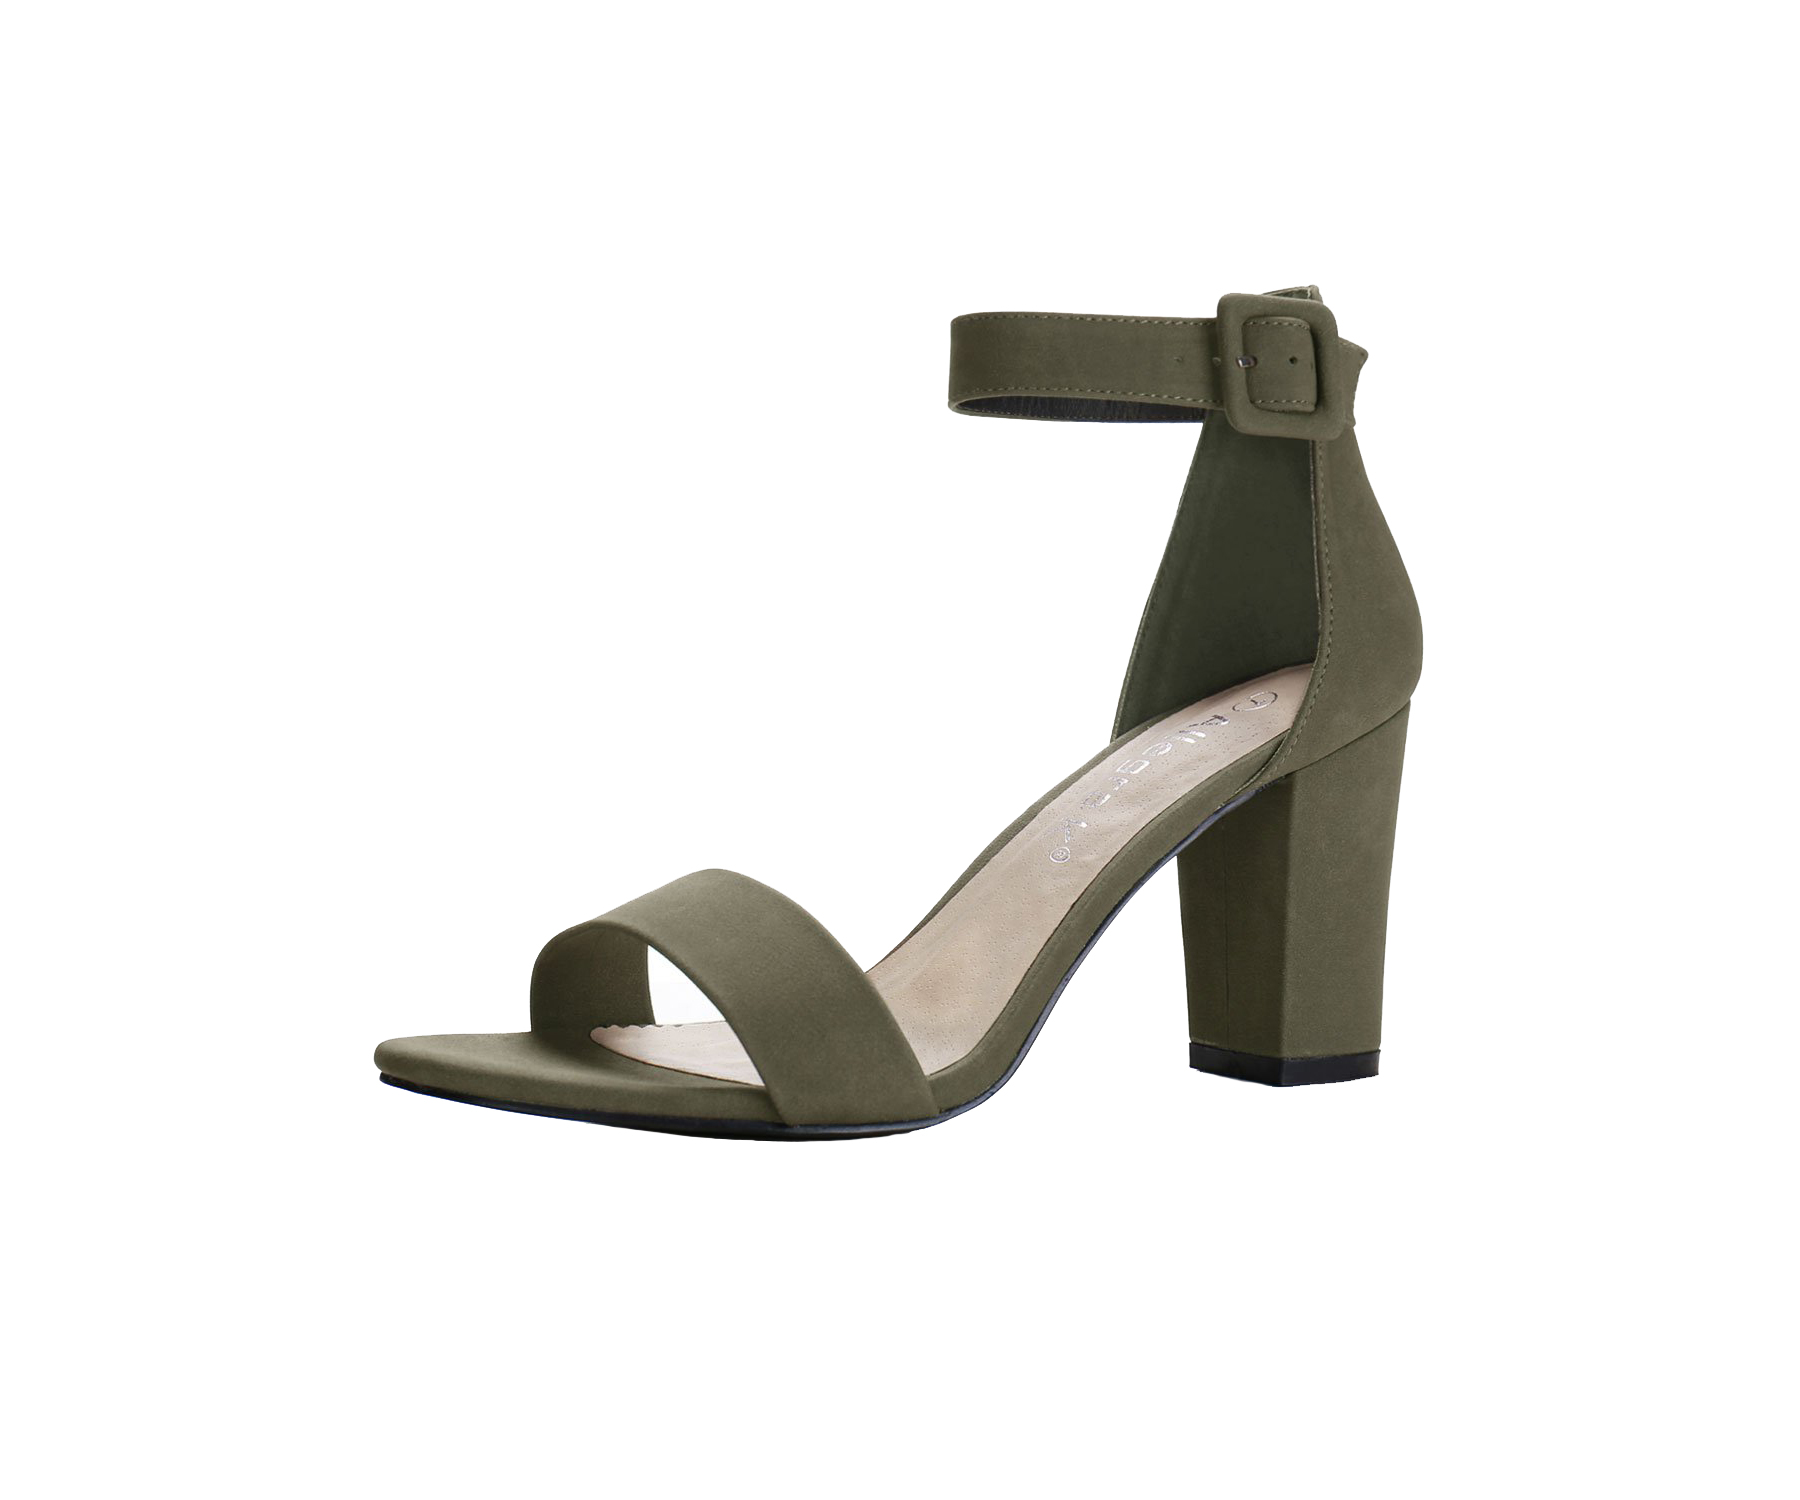 Allegra K High Chunky Heel Ankle Strap Sandals on Amazon